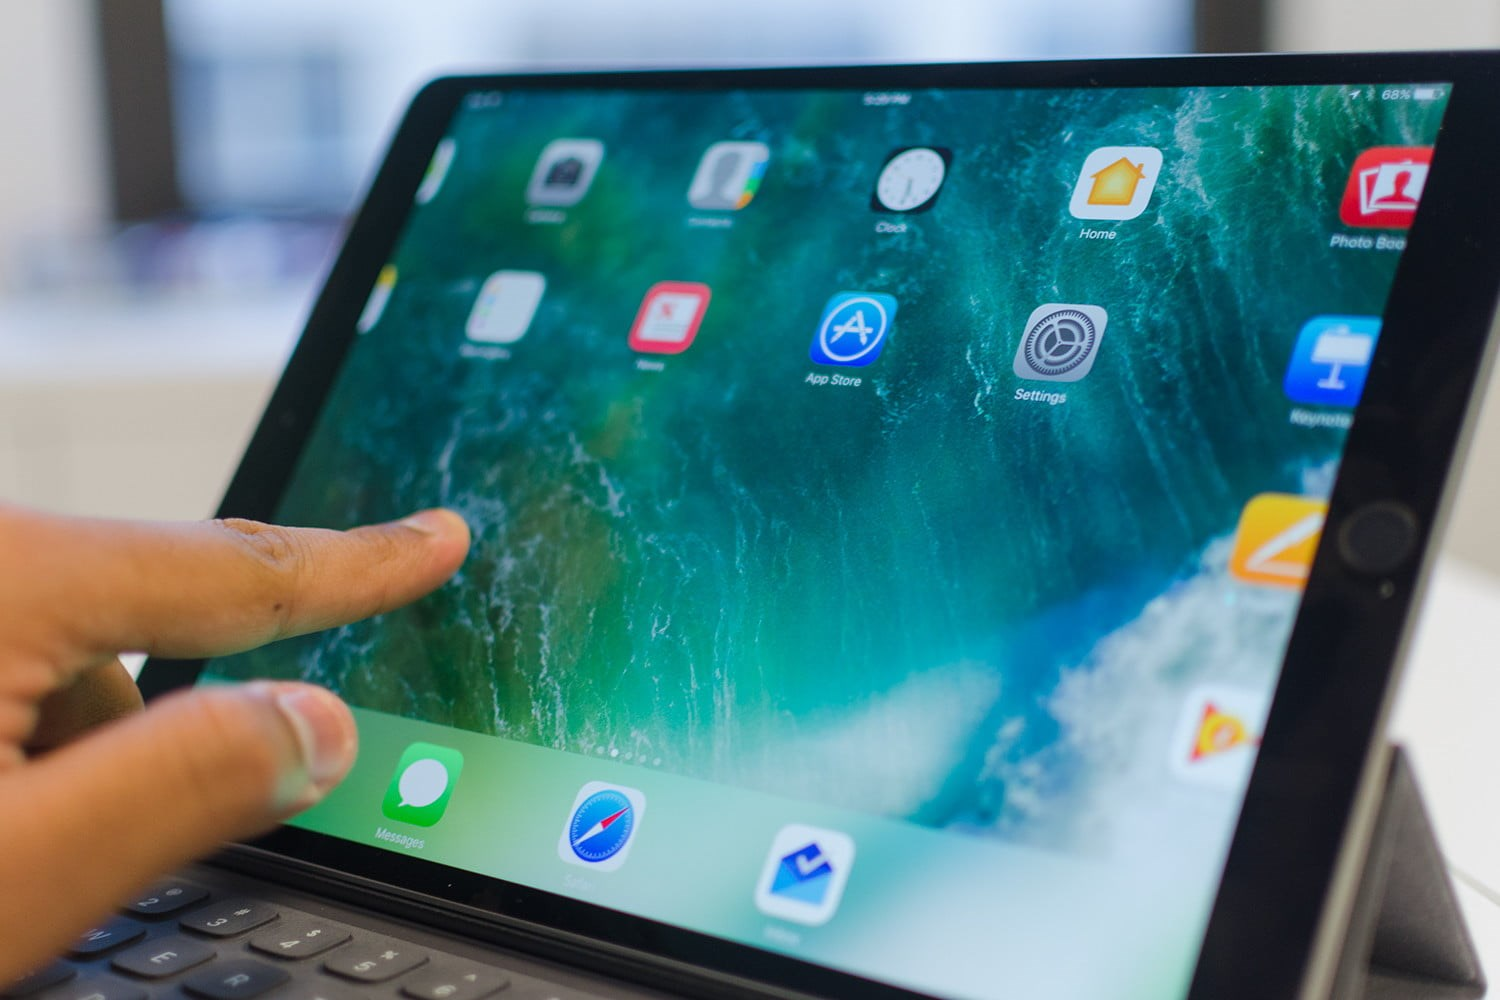 Application similaire a iap cracker download idm 519 full crack free need a new tablet check out the best ipad deals for may 2018 fandeluxe Image collections